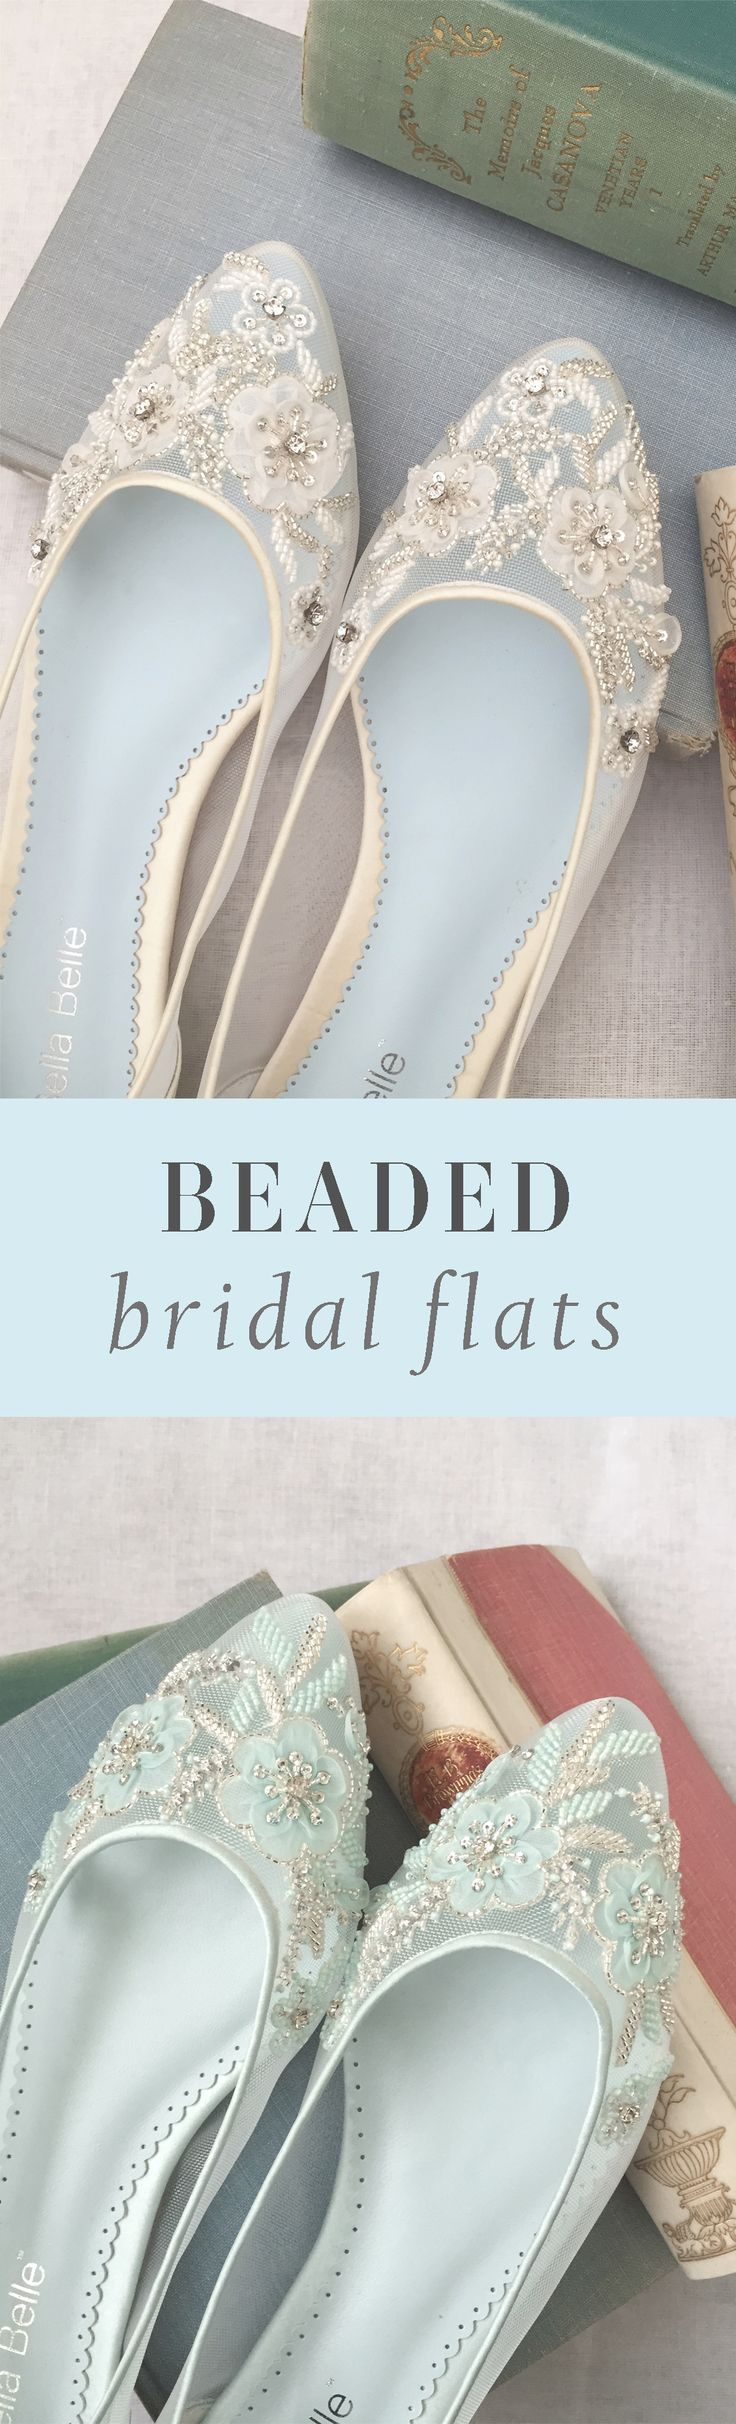 - Adora - 'Eternal' bridal collection - Romantic mesh flats with floral beading - Hand beaded and embroidered - Swiss dot beaded effect across the sides - Soft and comfortable modern glass slippers -